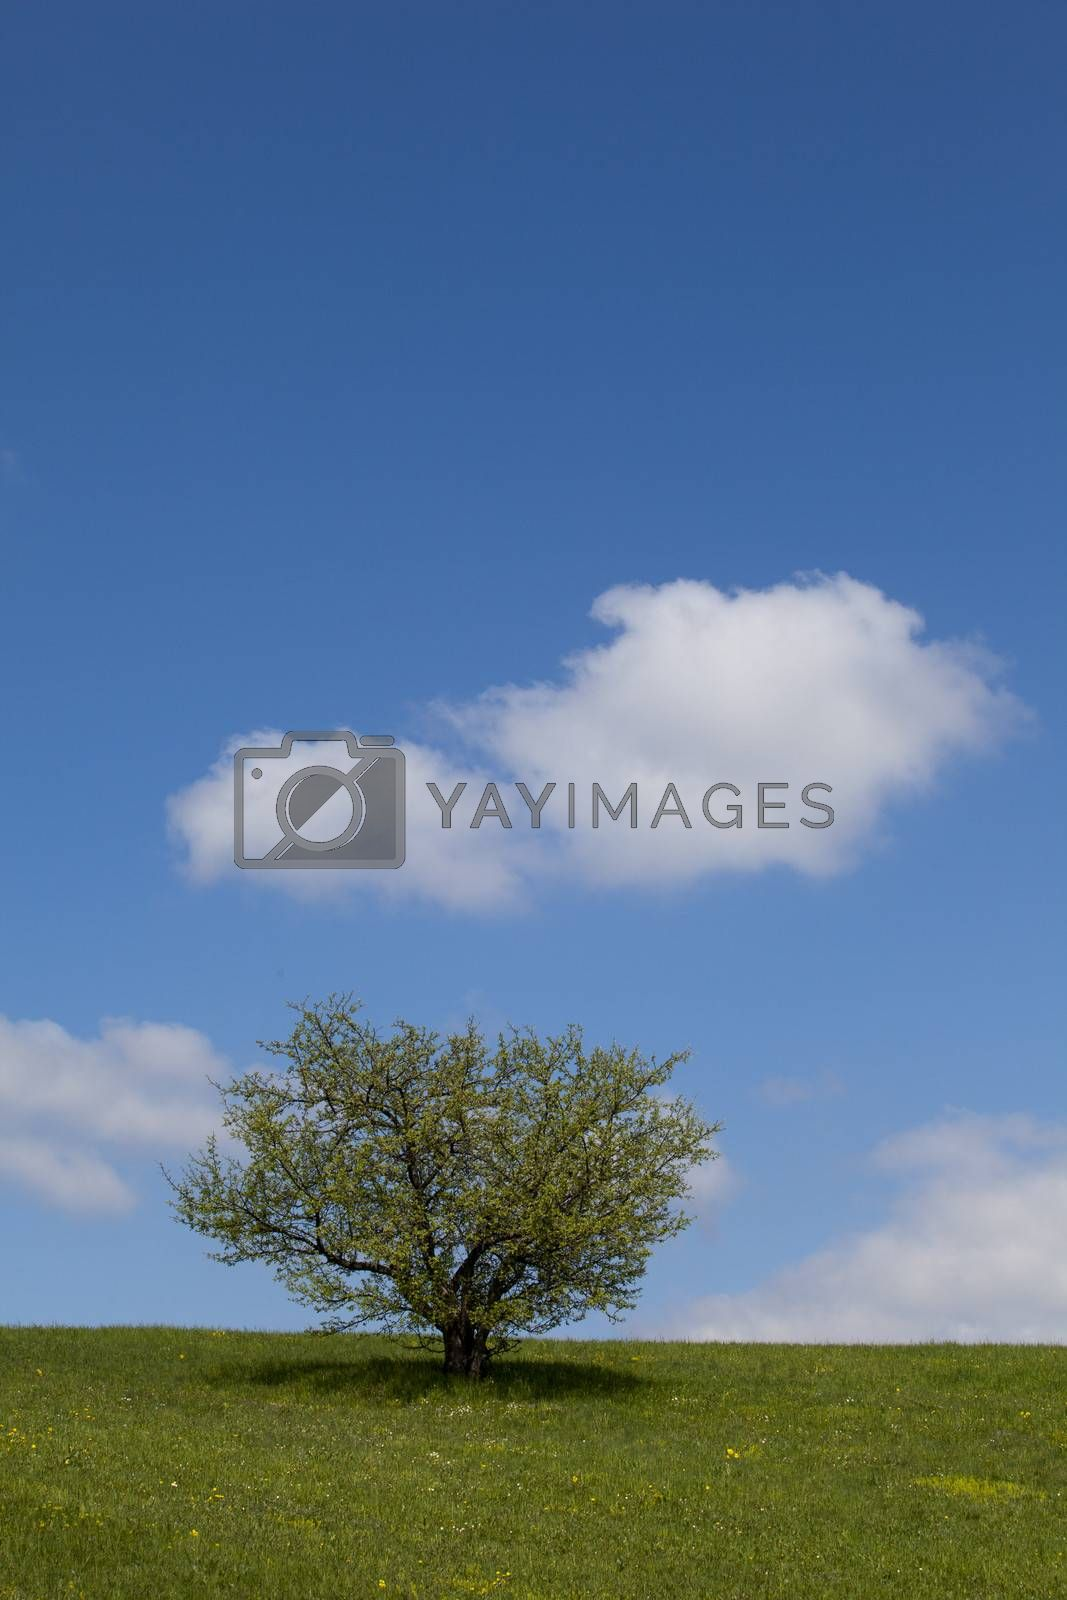 Tree on a green field against a blue sky